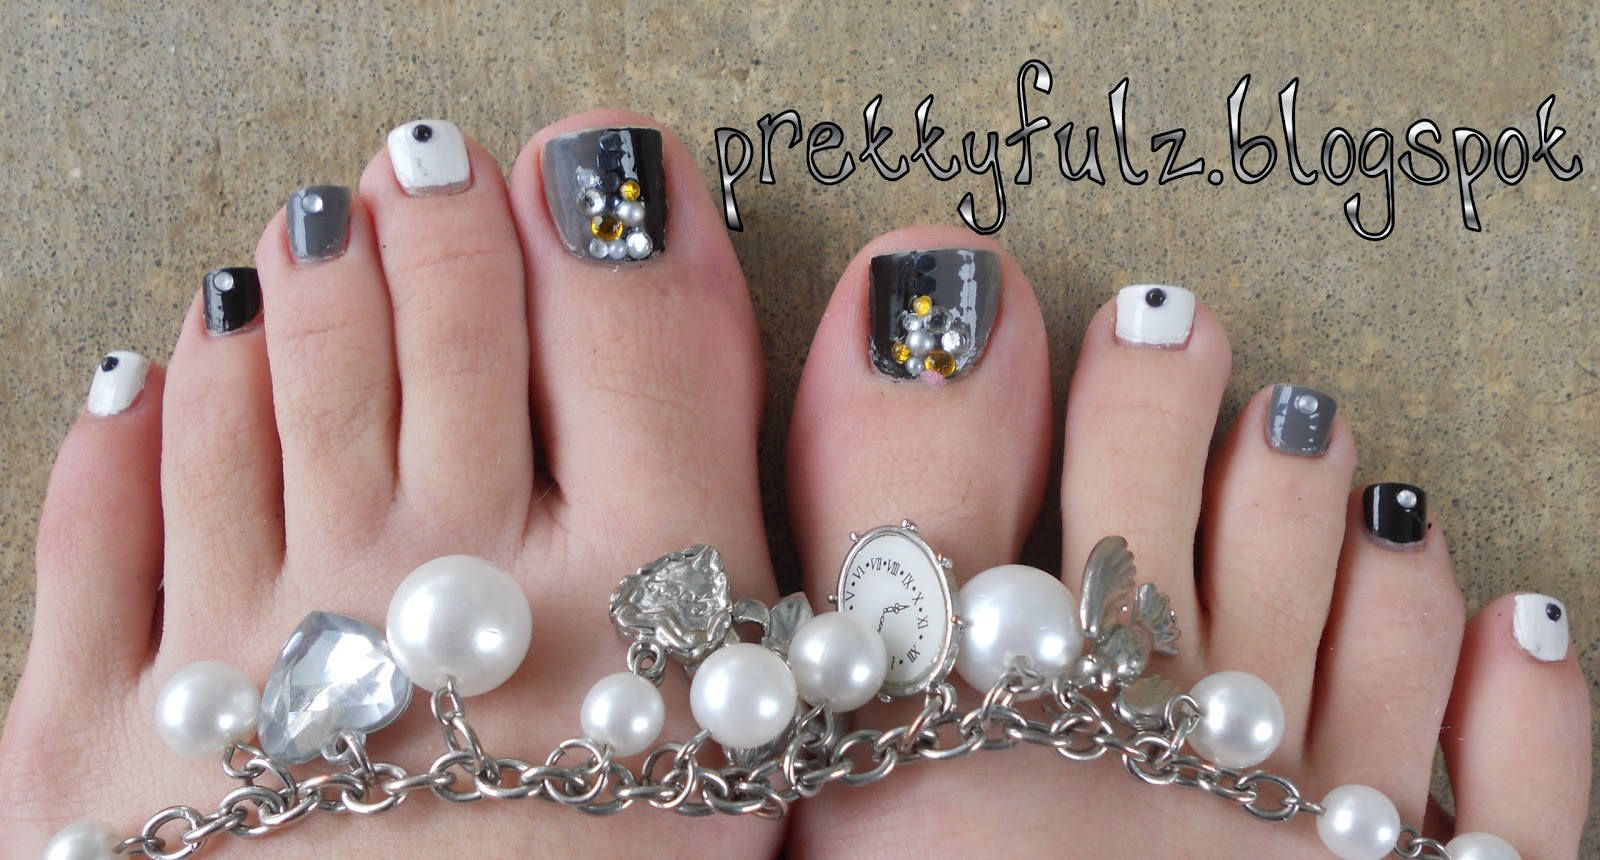 16 Black And White Pedicure Designs Images